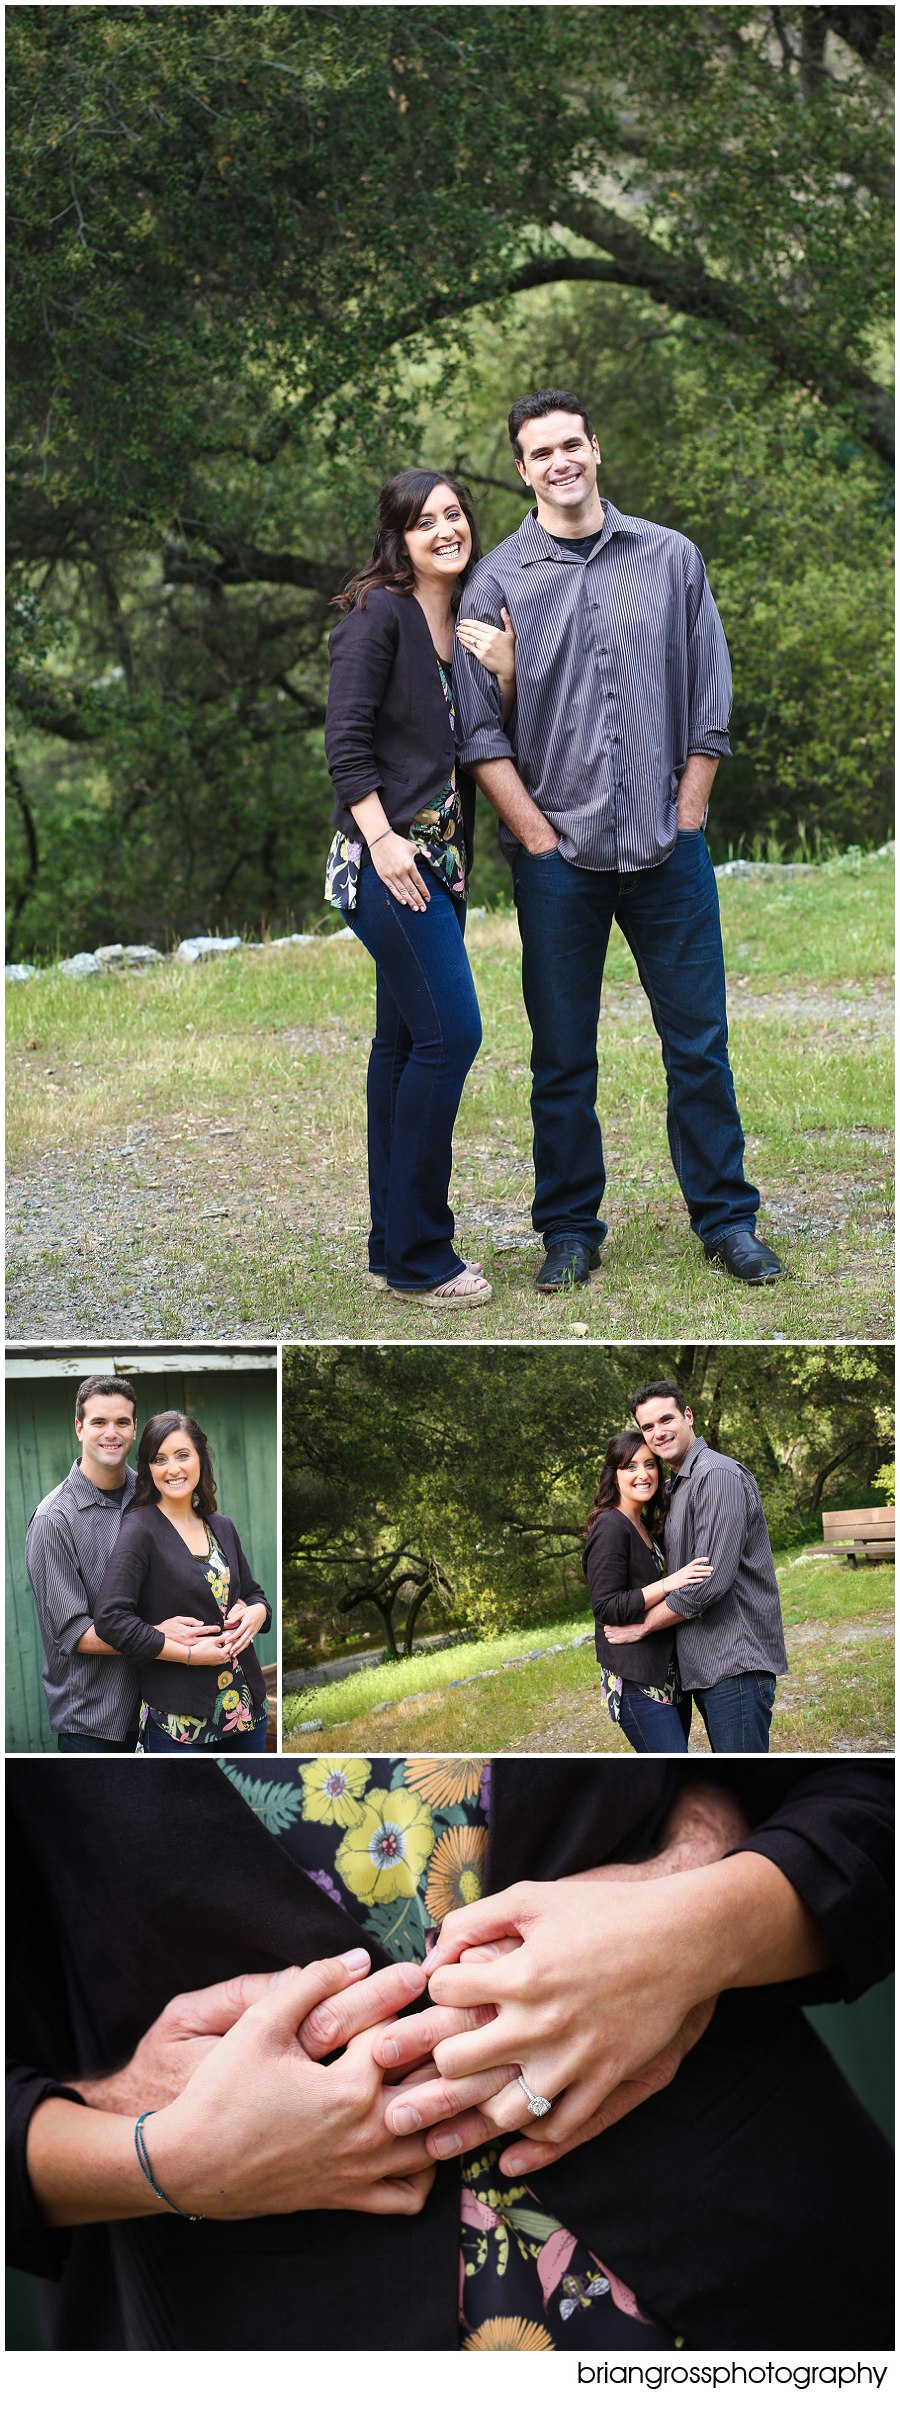 Rachael&Andy_Engagement_BrianGrossPhotography-102_WEB